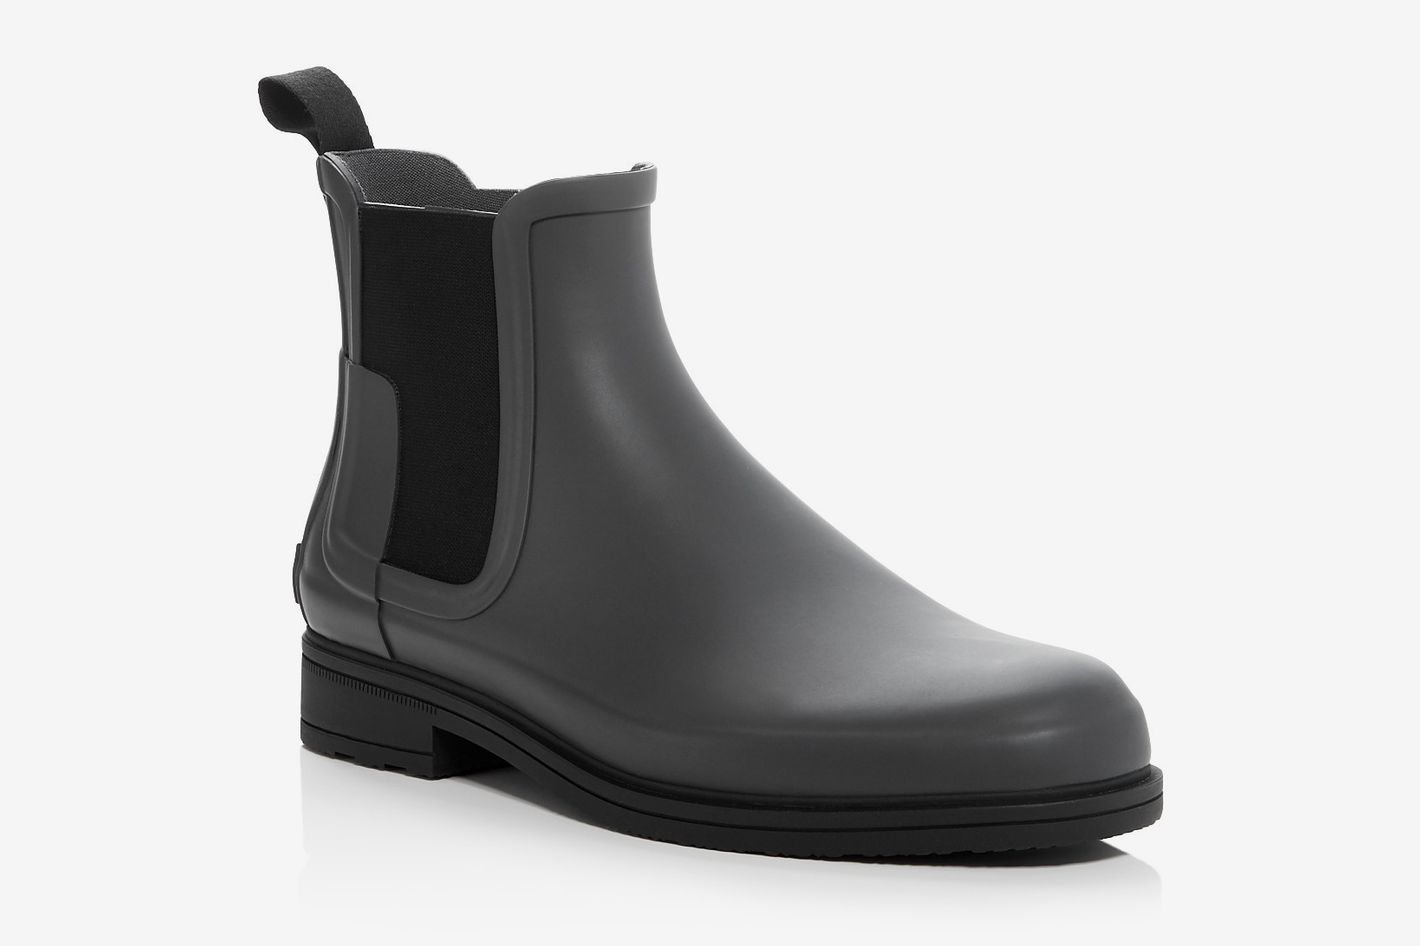 Hunter men's rain boots